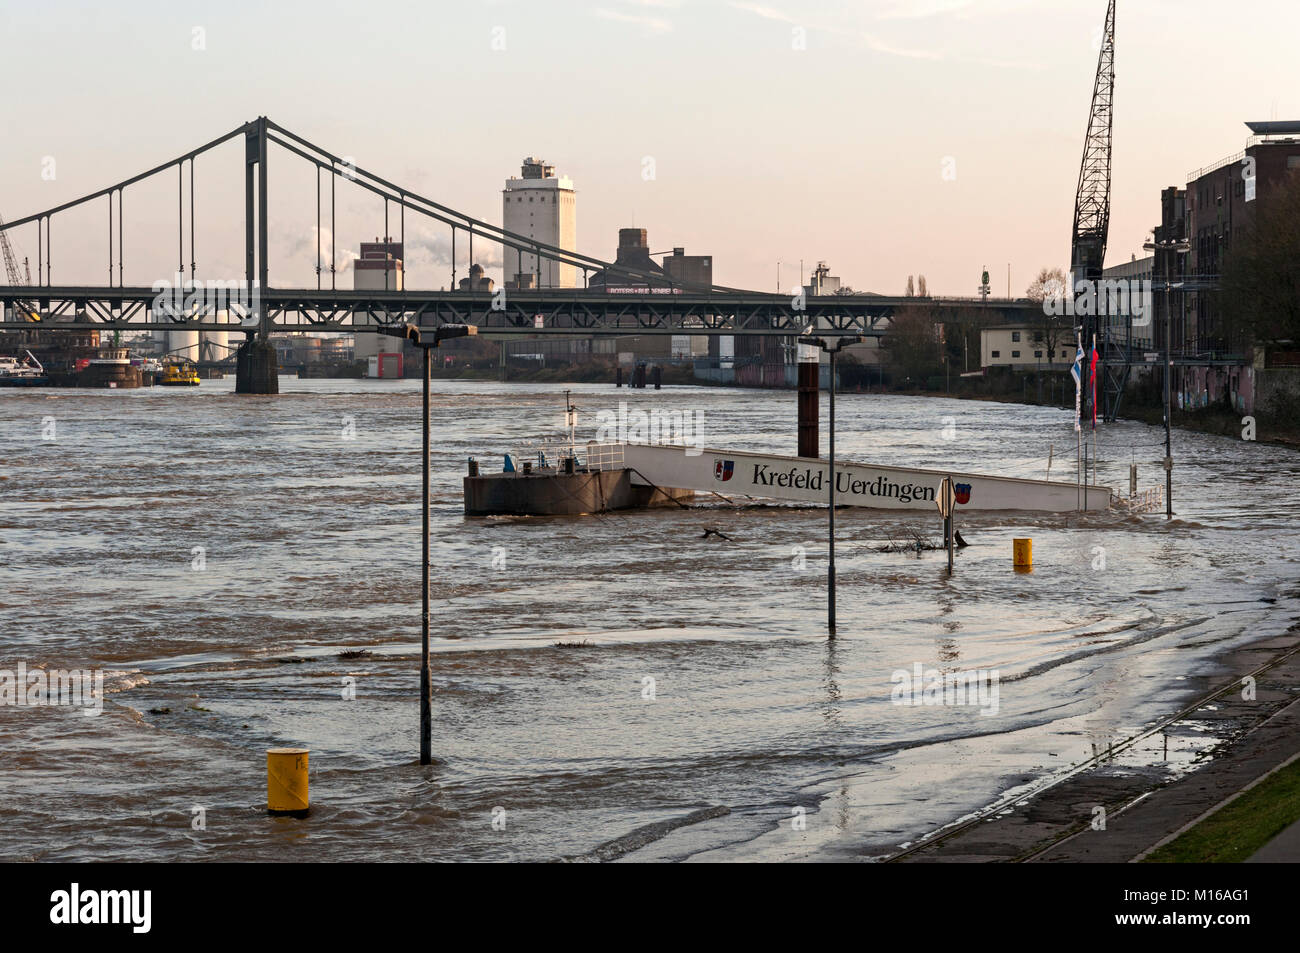 Flooding on the River Rhine, Krefeld, NRW, Germany. - Stock Image